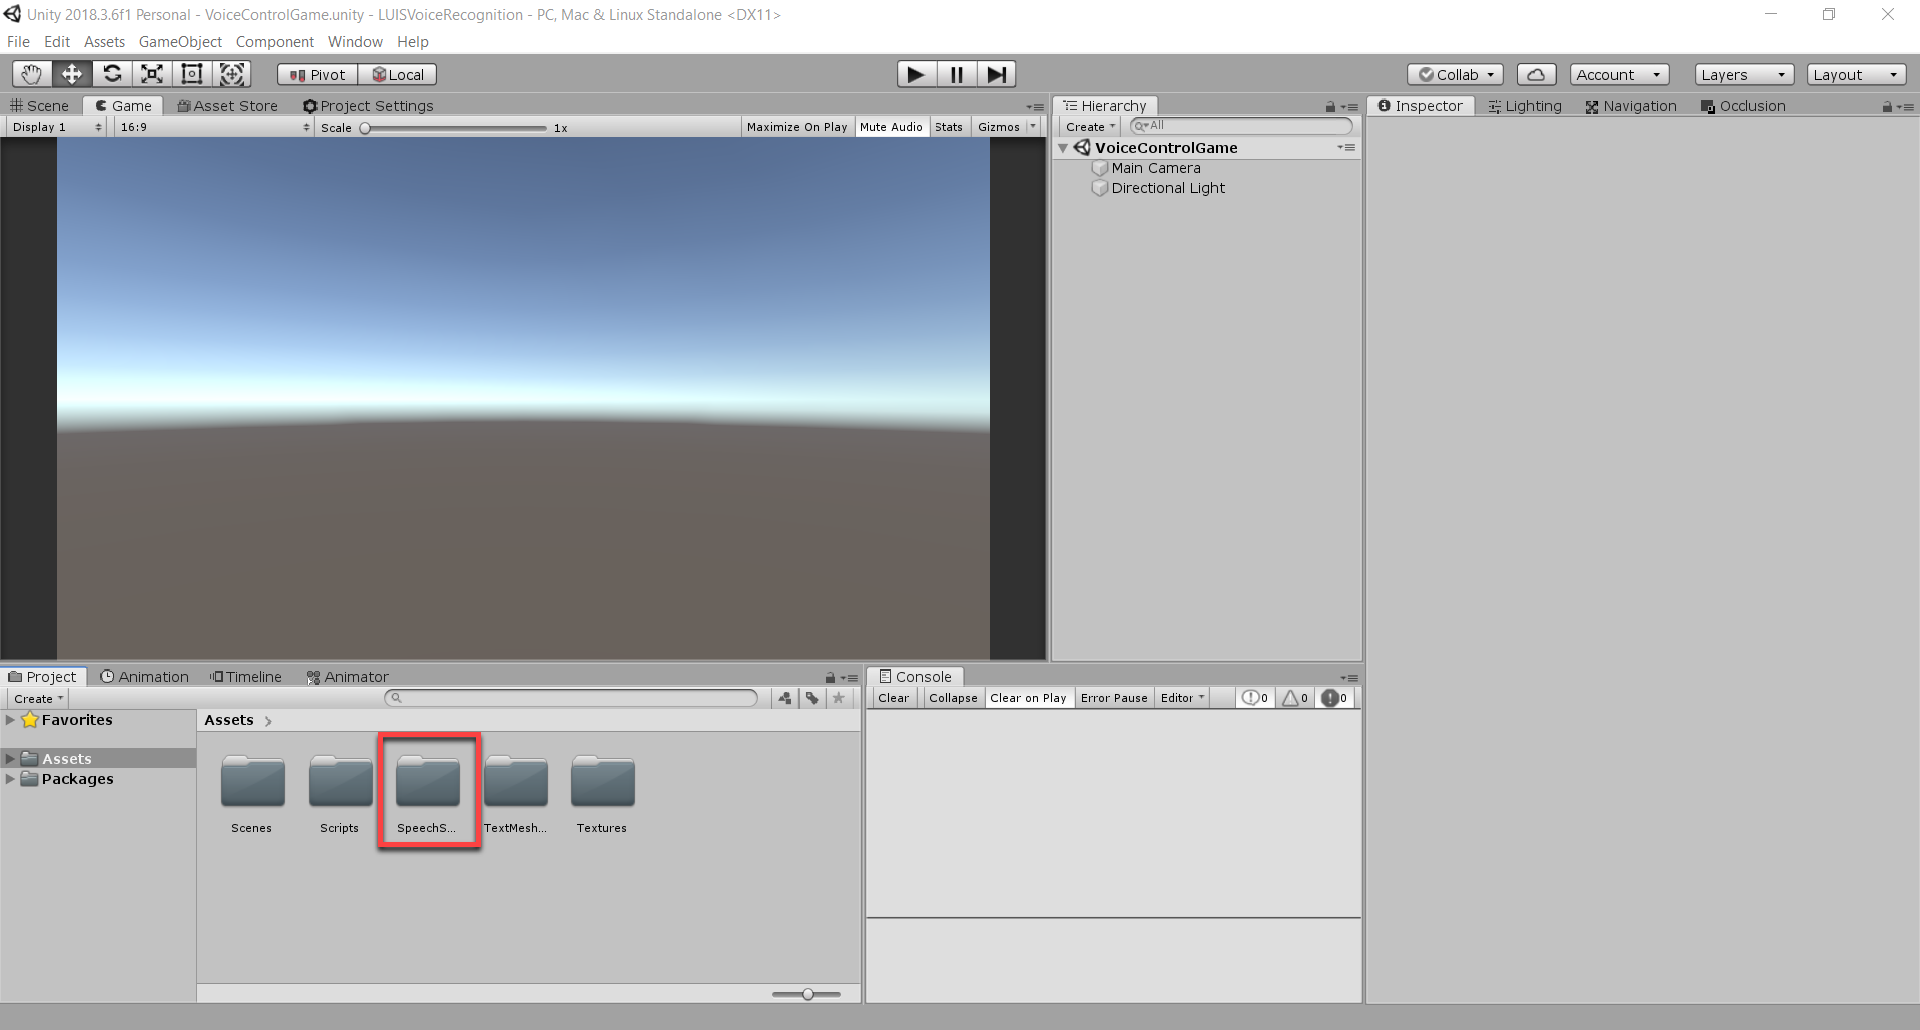 New Unity project with Speech SDK folder highlighted